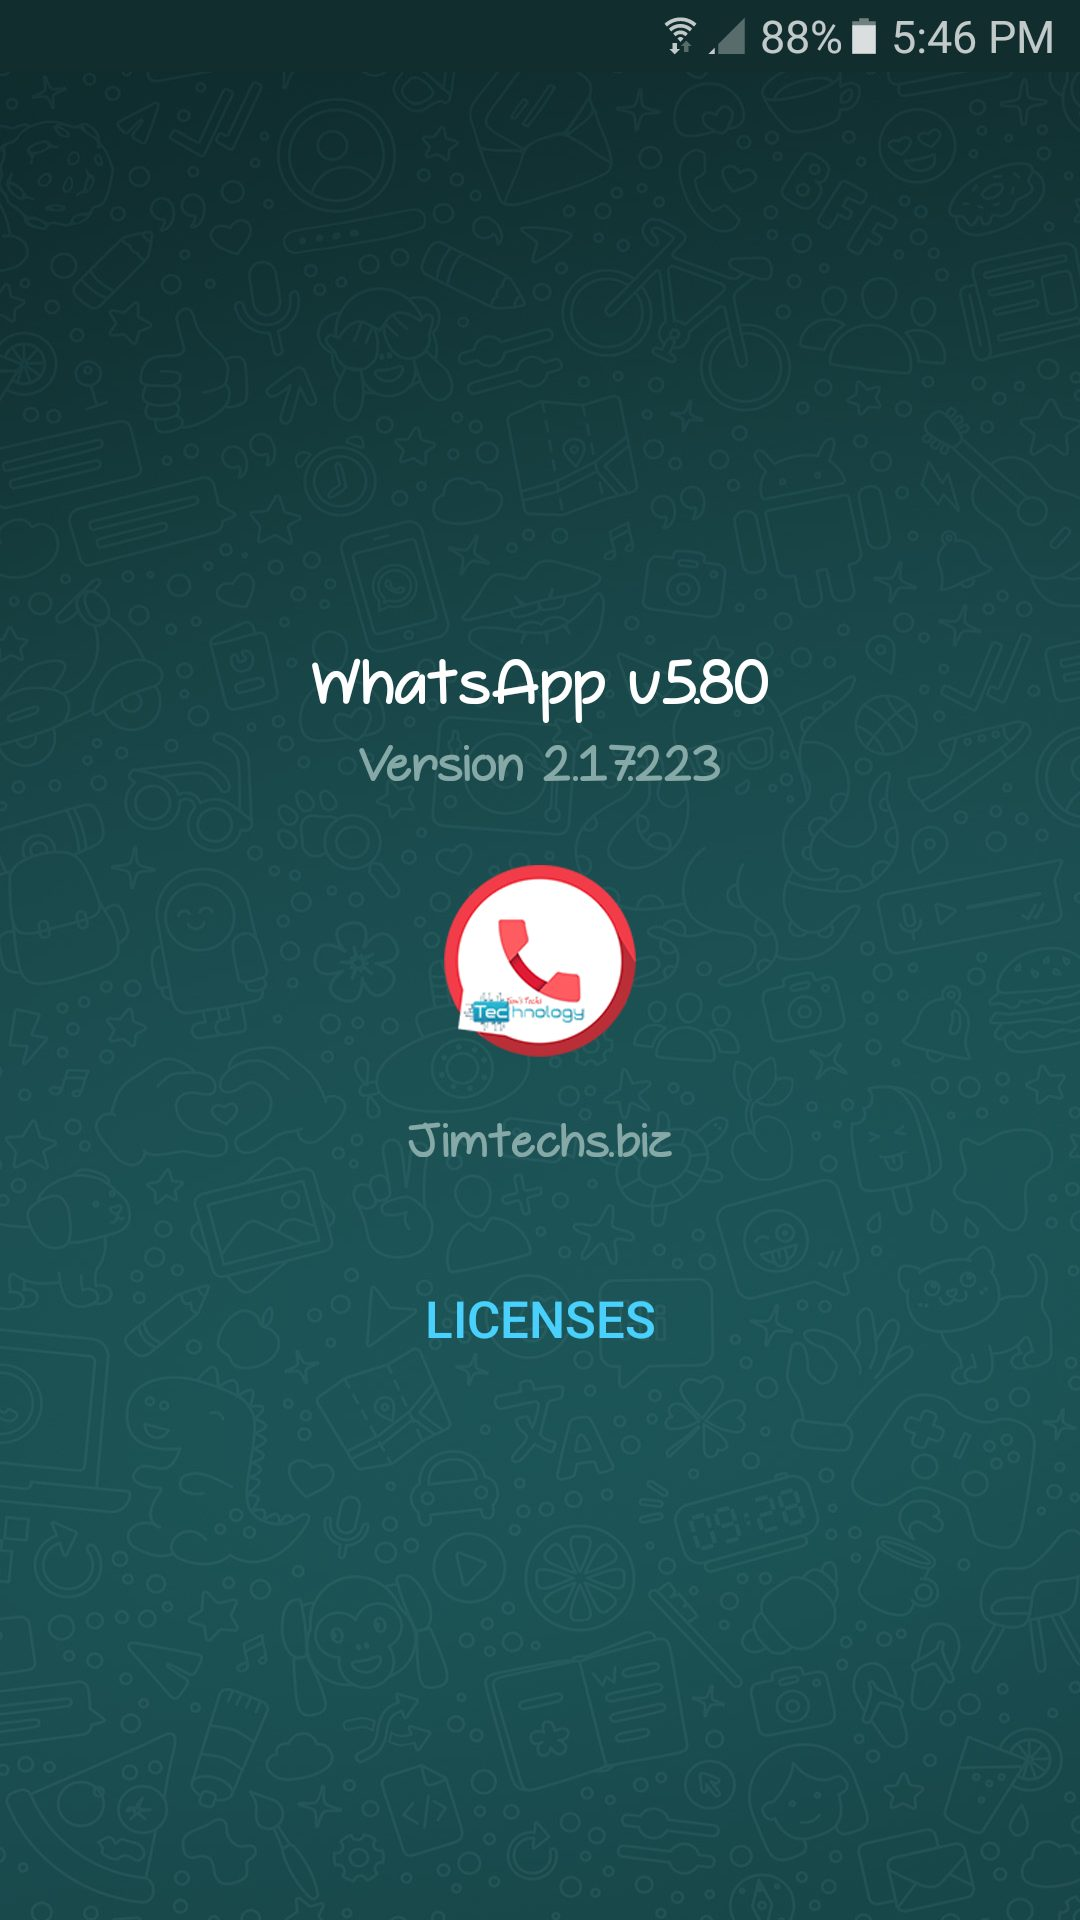 WhatsApp plus JiMODs v5.80 Jimtechs Editions